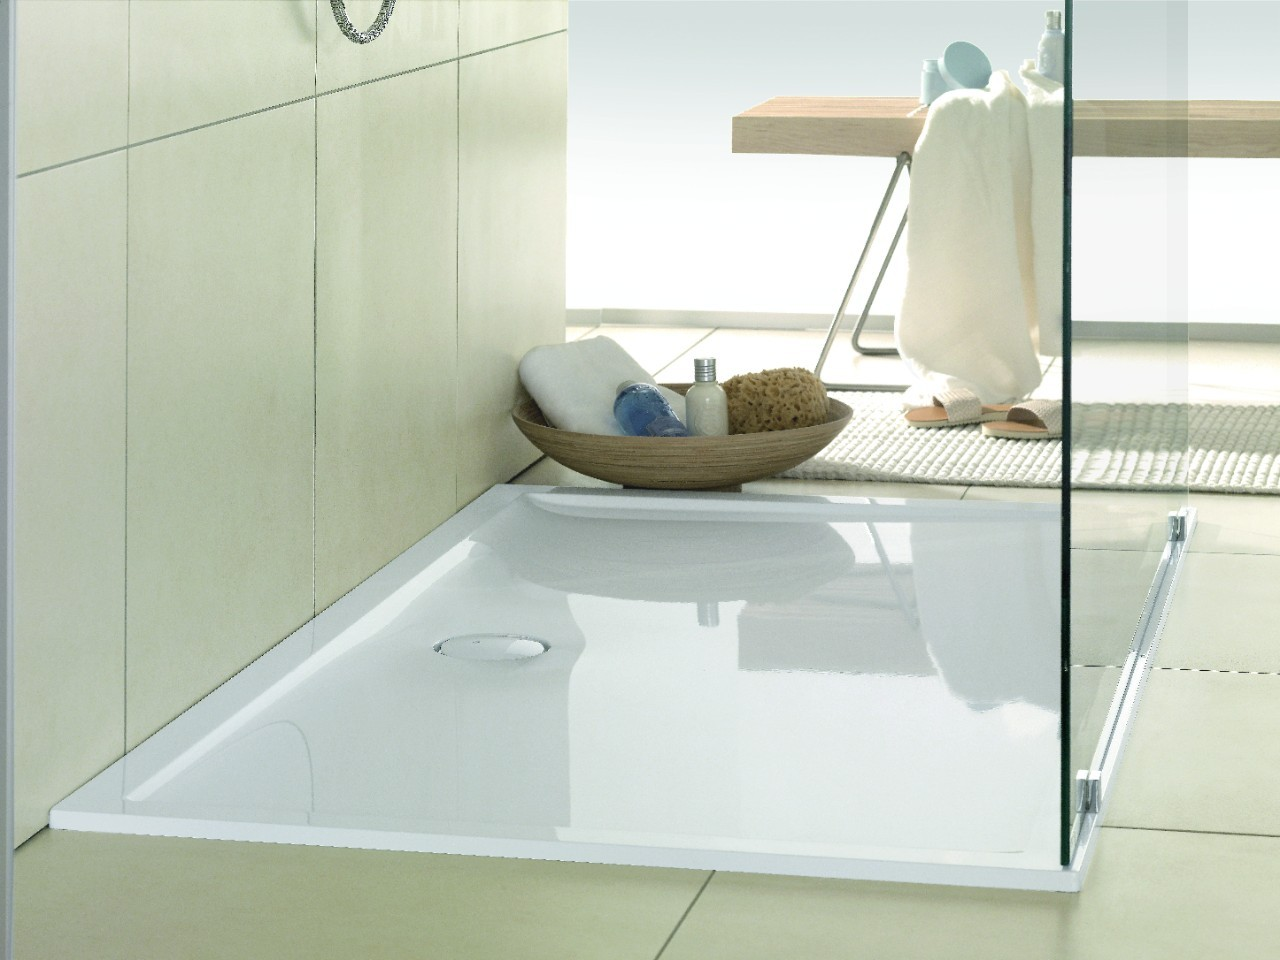 villeroy boch futurion flat inloopdouche. Black Bedroom Furniture Sets. Home Design Ideas